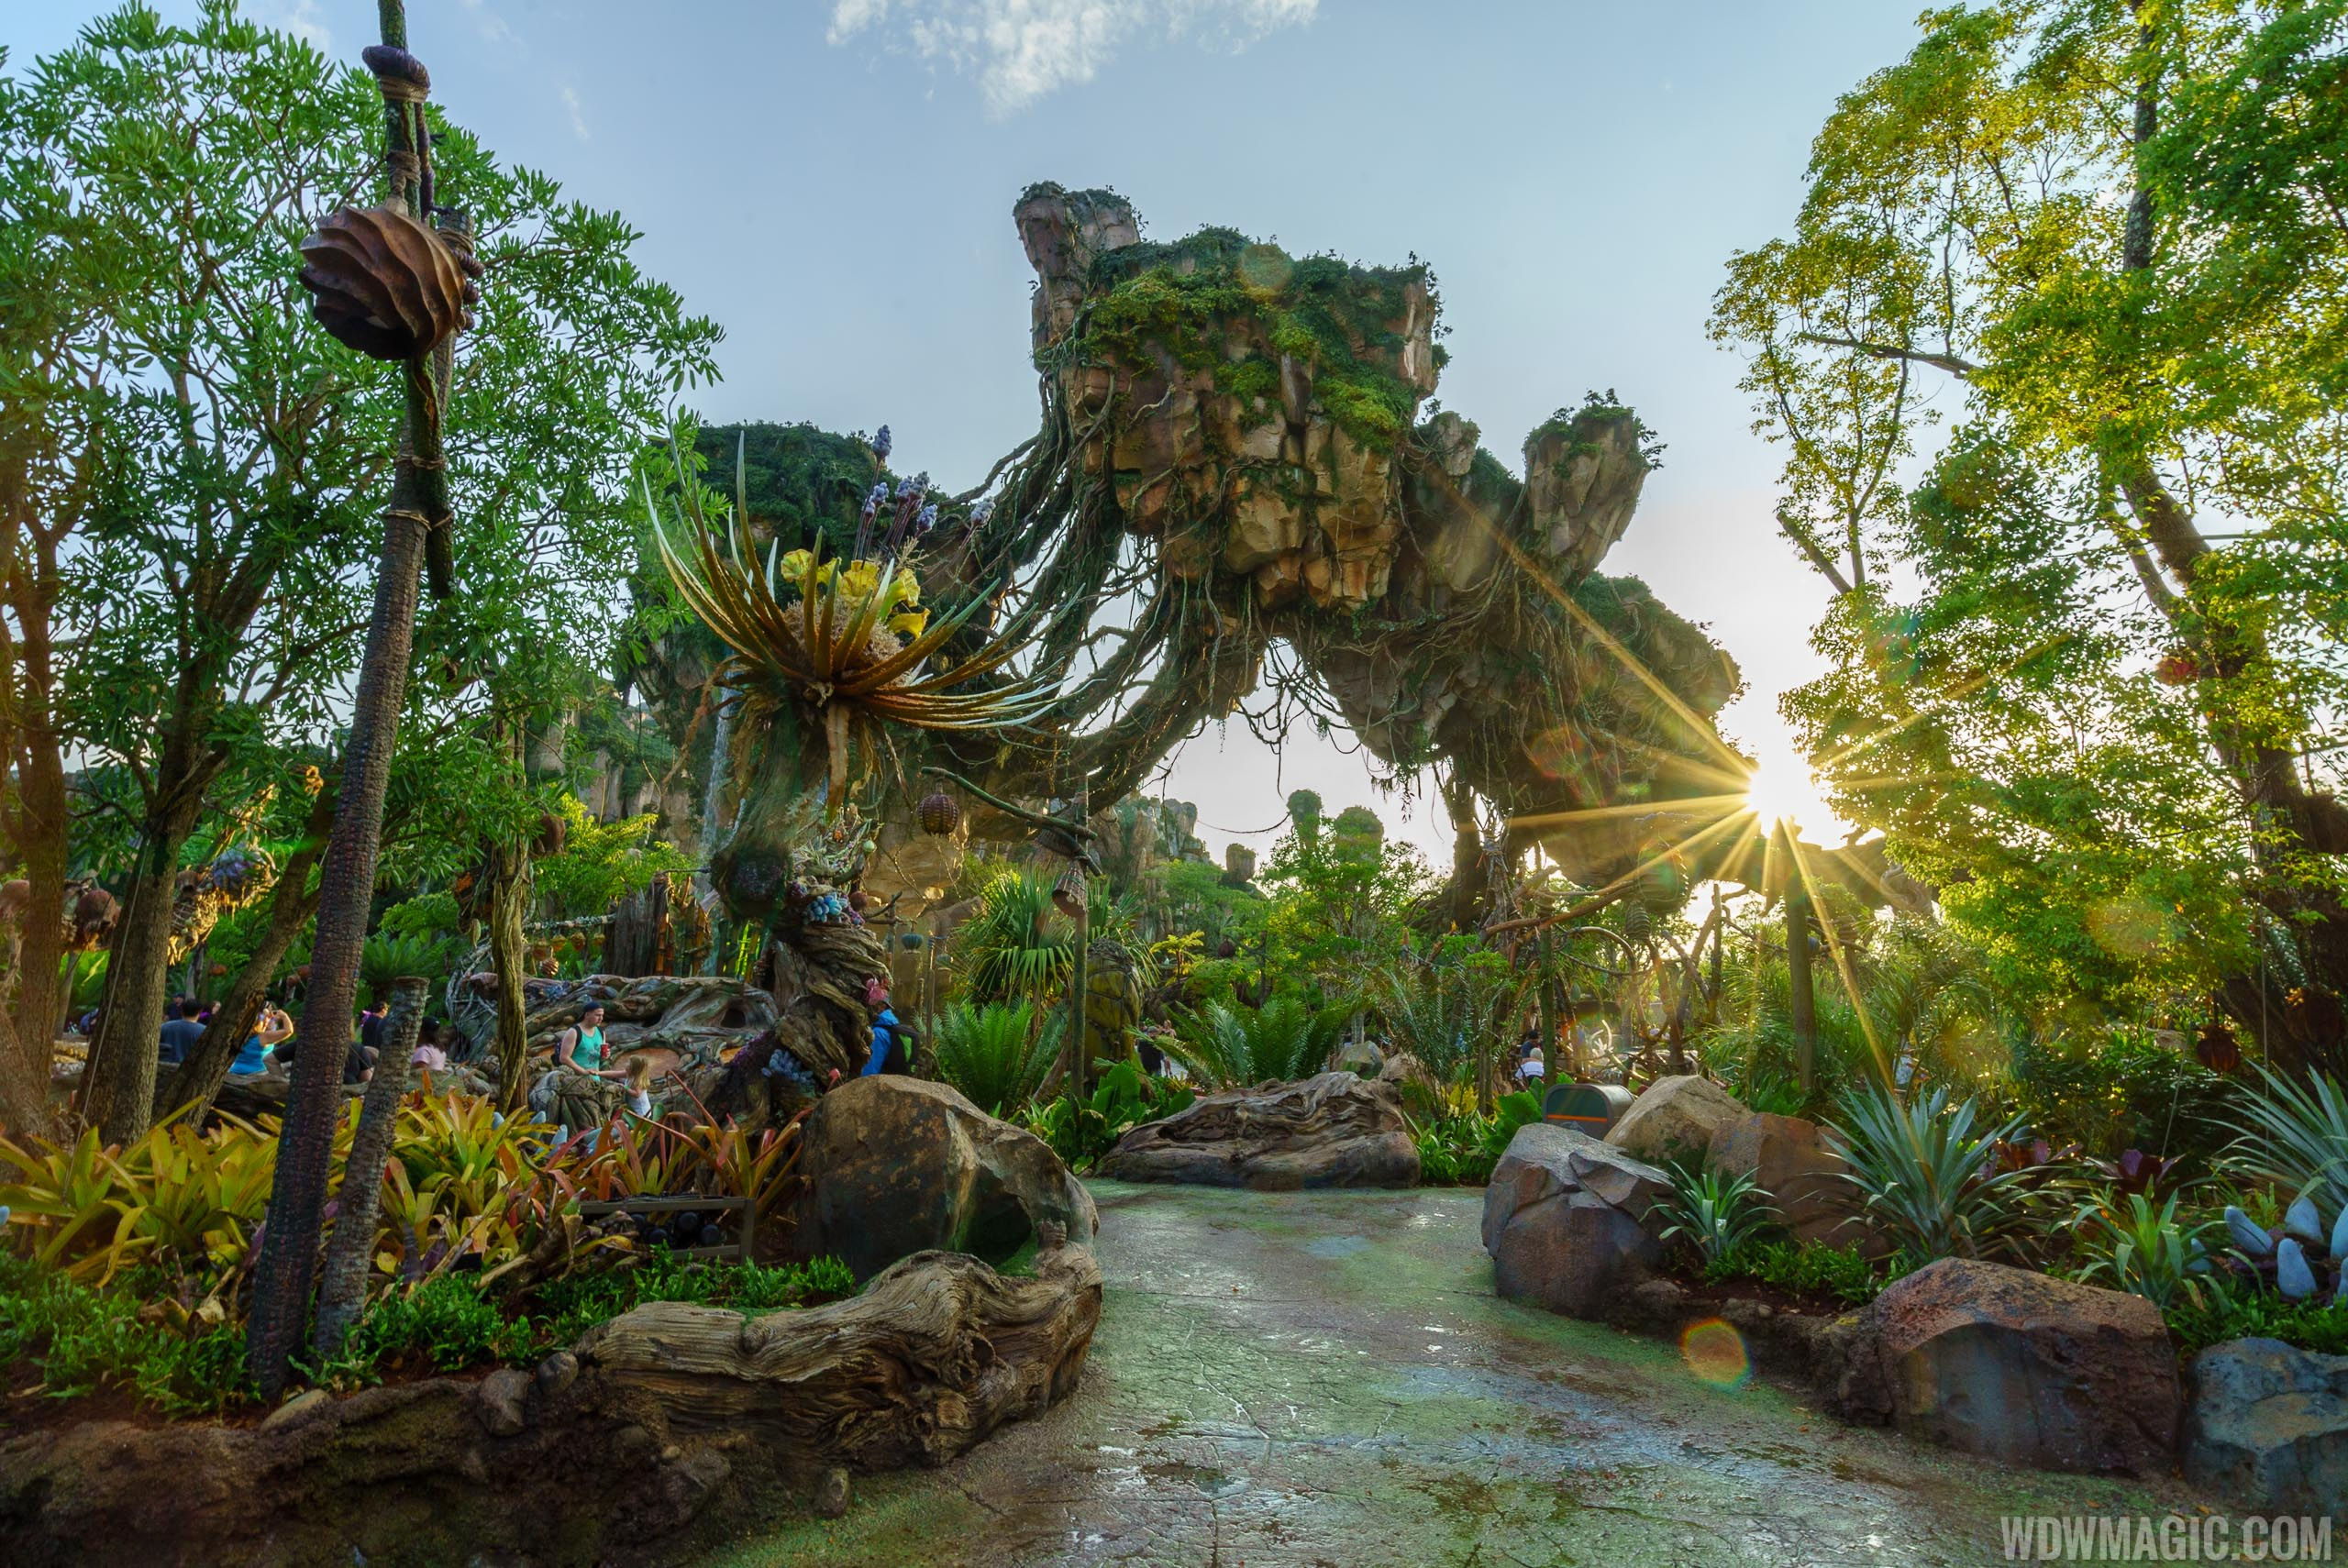 The Landscape of Pandora - The World of Avatar